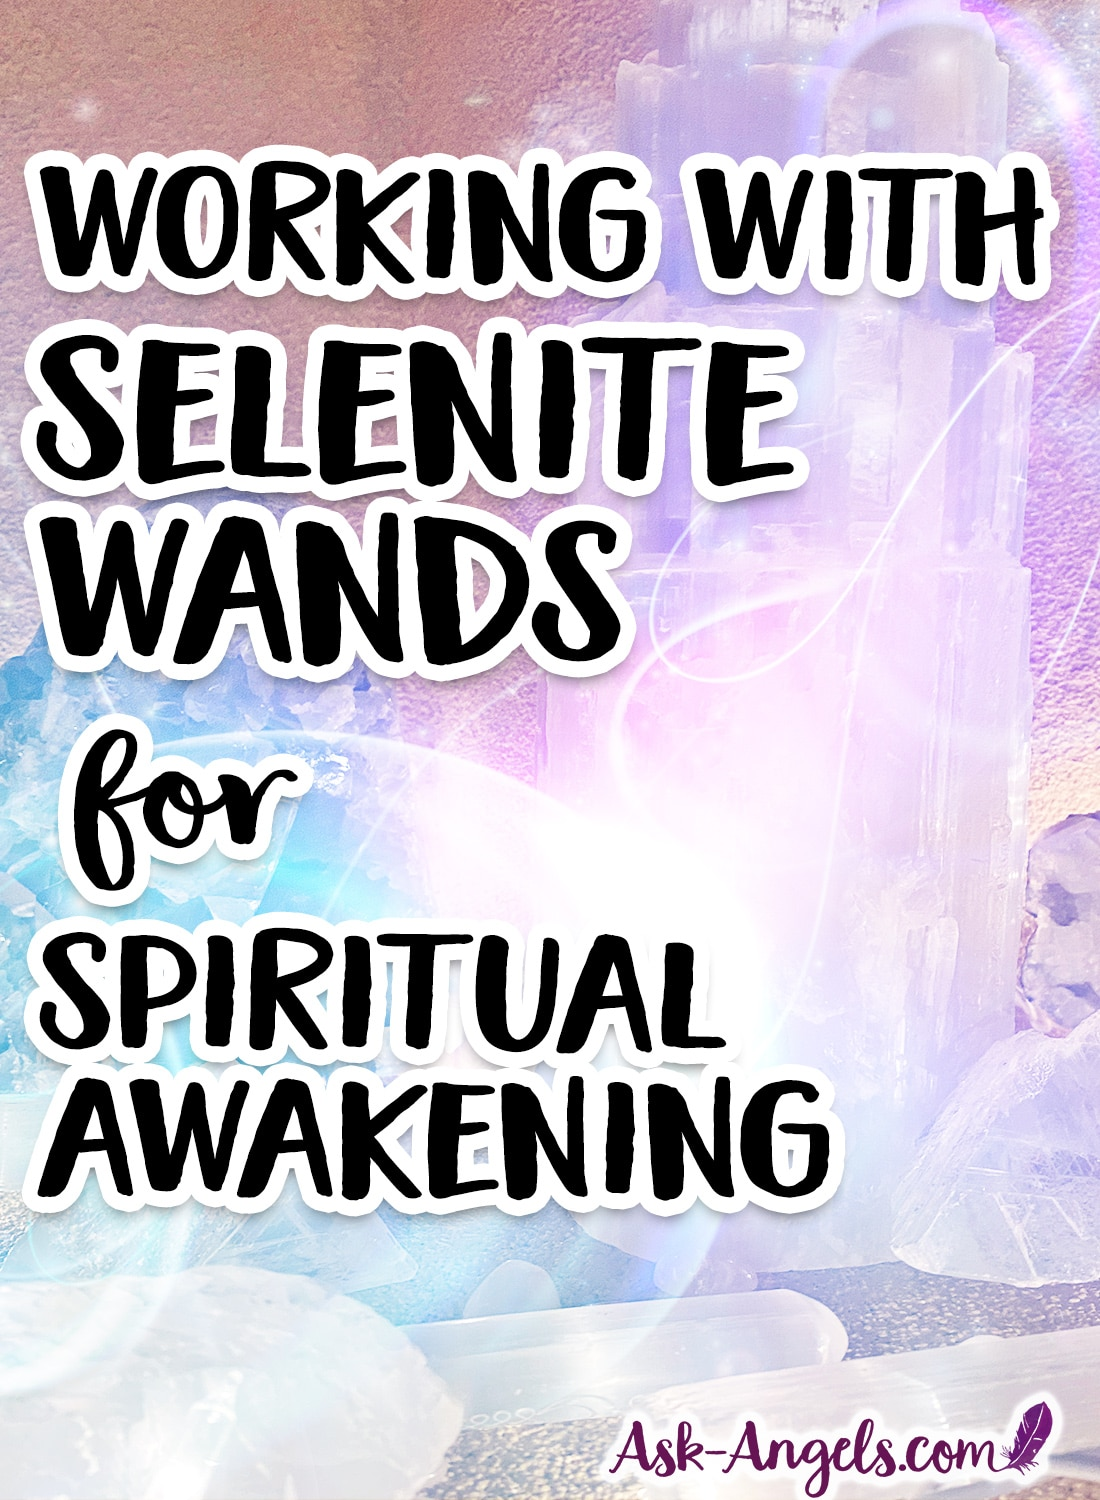 working with selenite wands